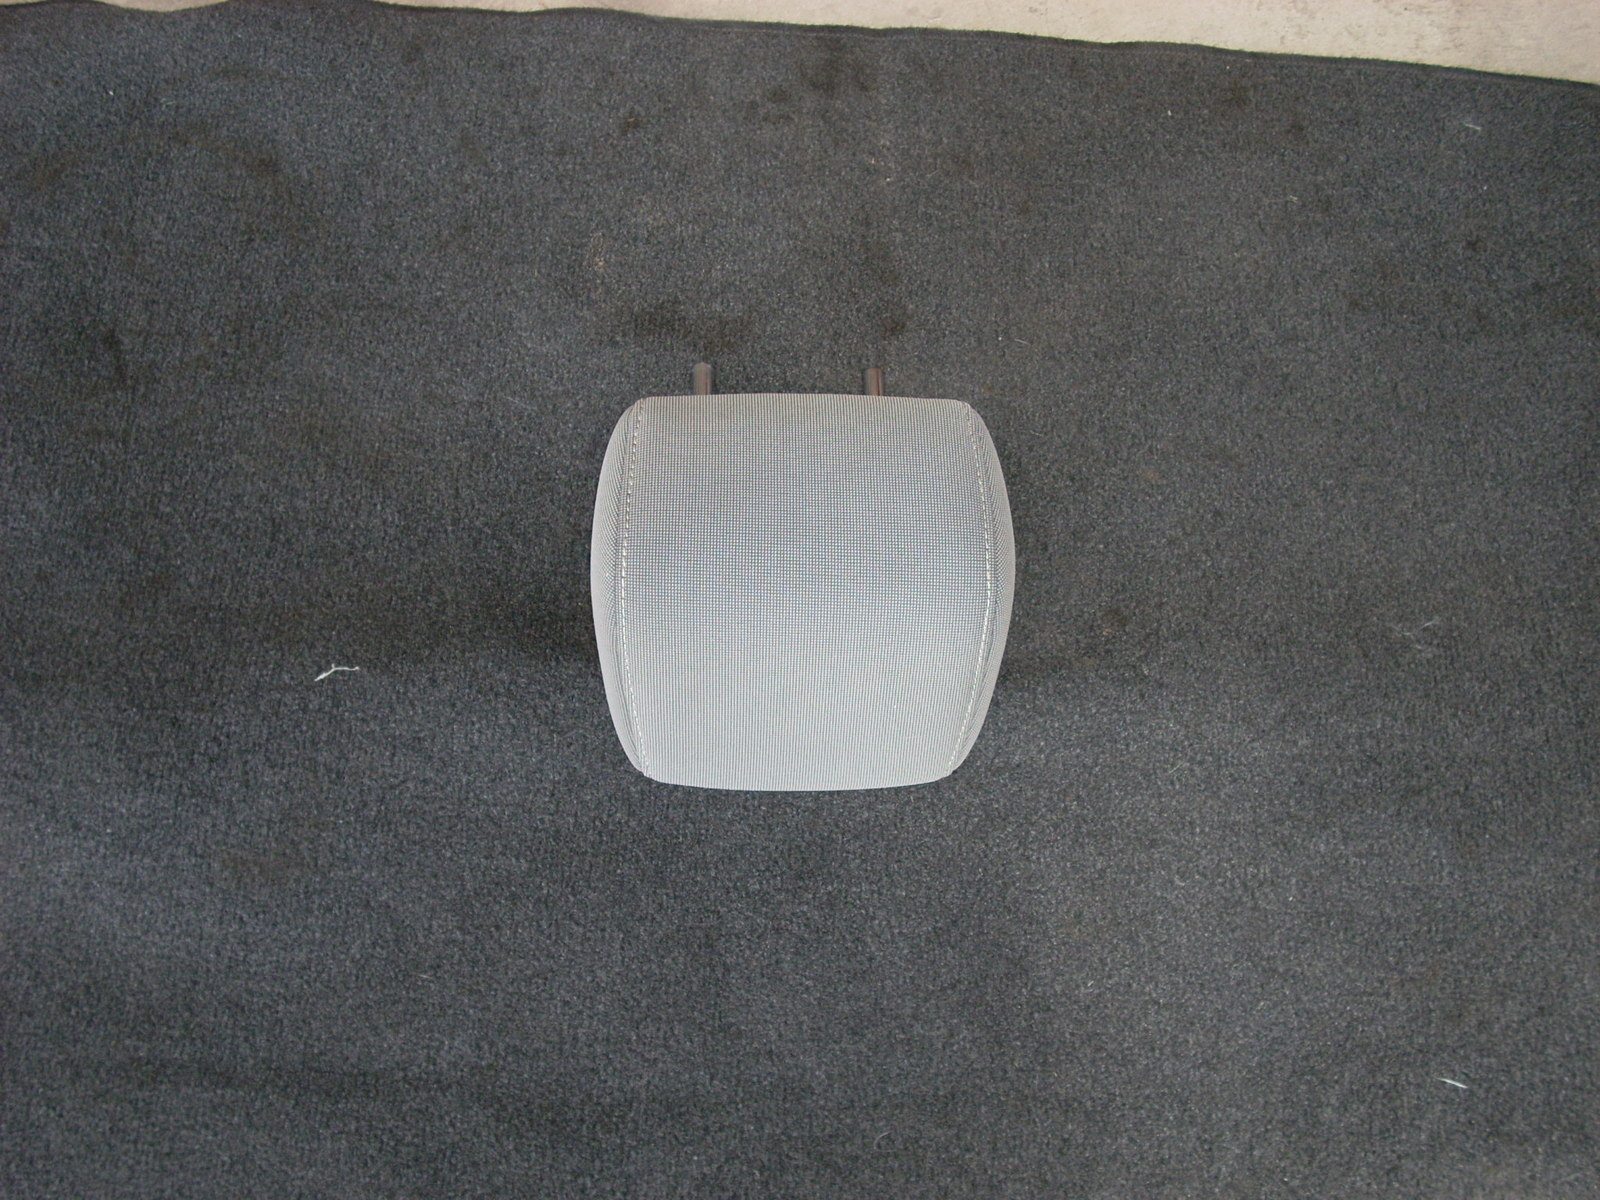 2013 FORD FOCUS REAR CENTER HEADREST